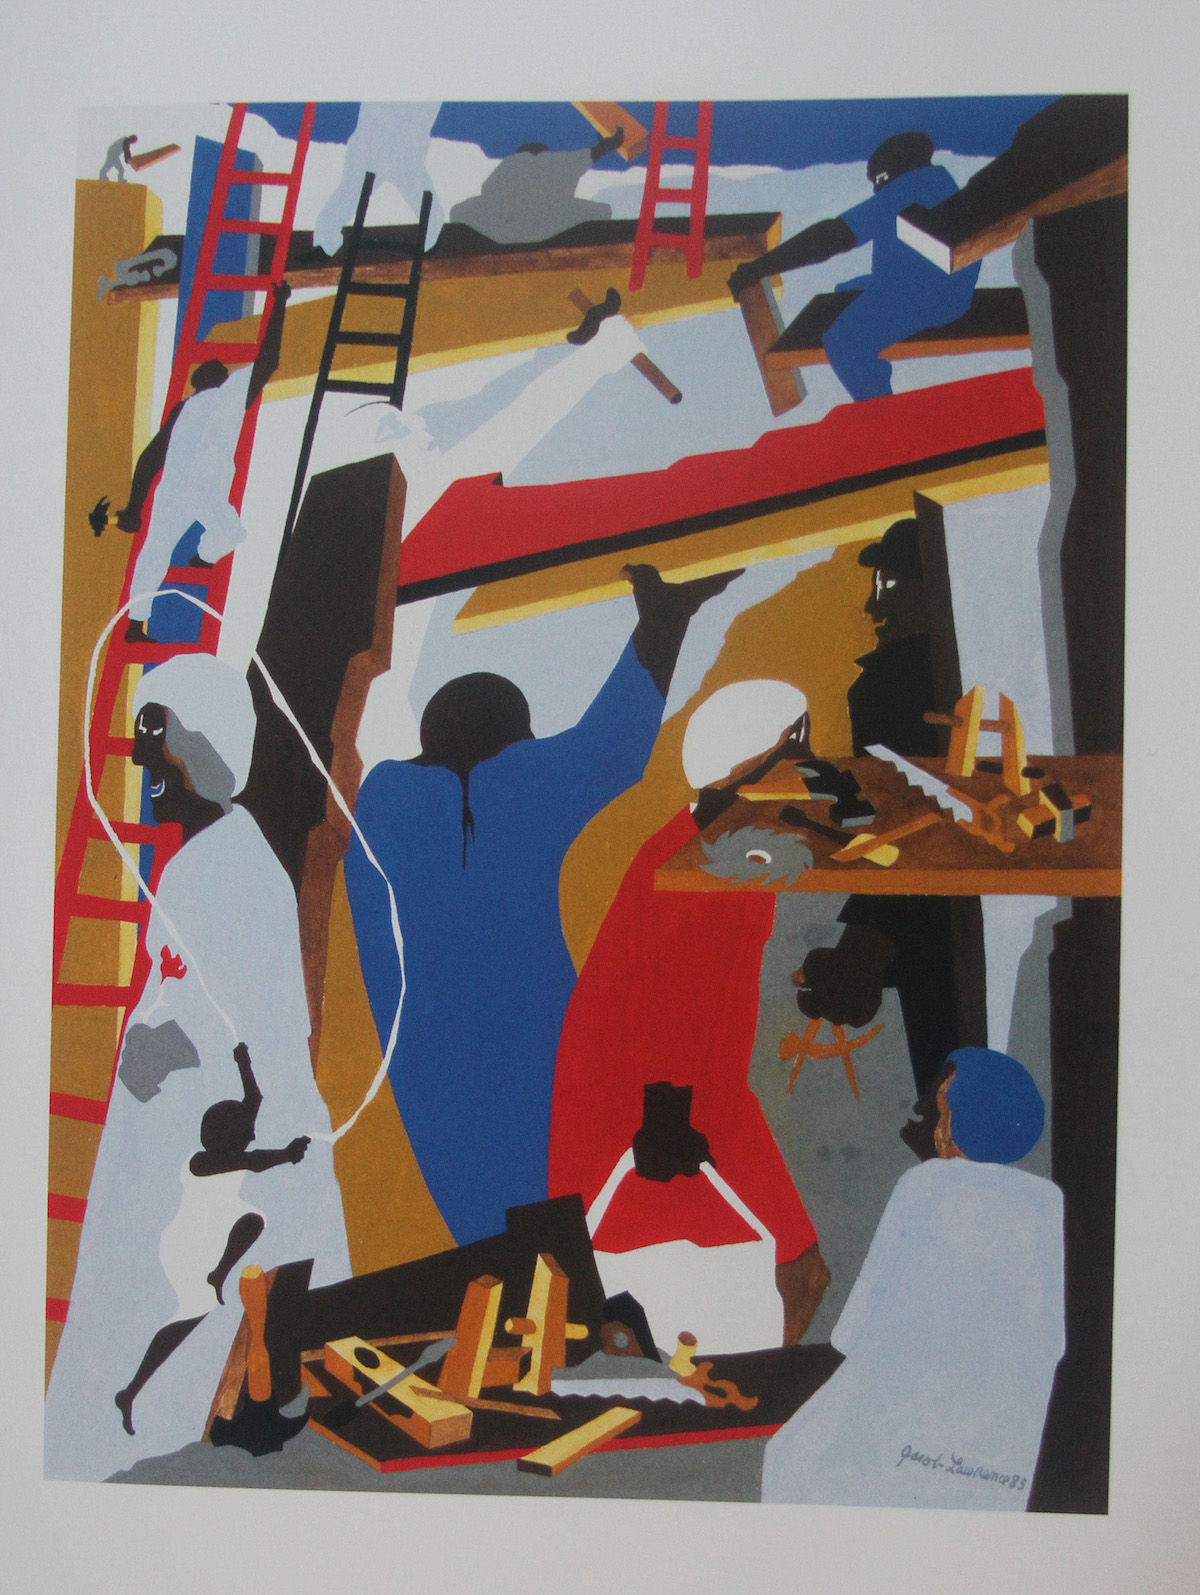 Jacob Lawrence, 'Building No. 1', 1985.